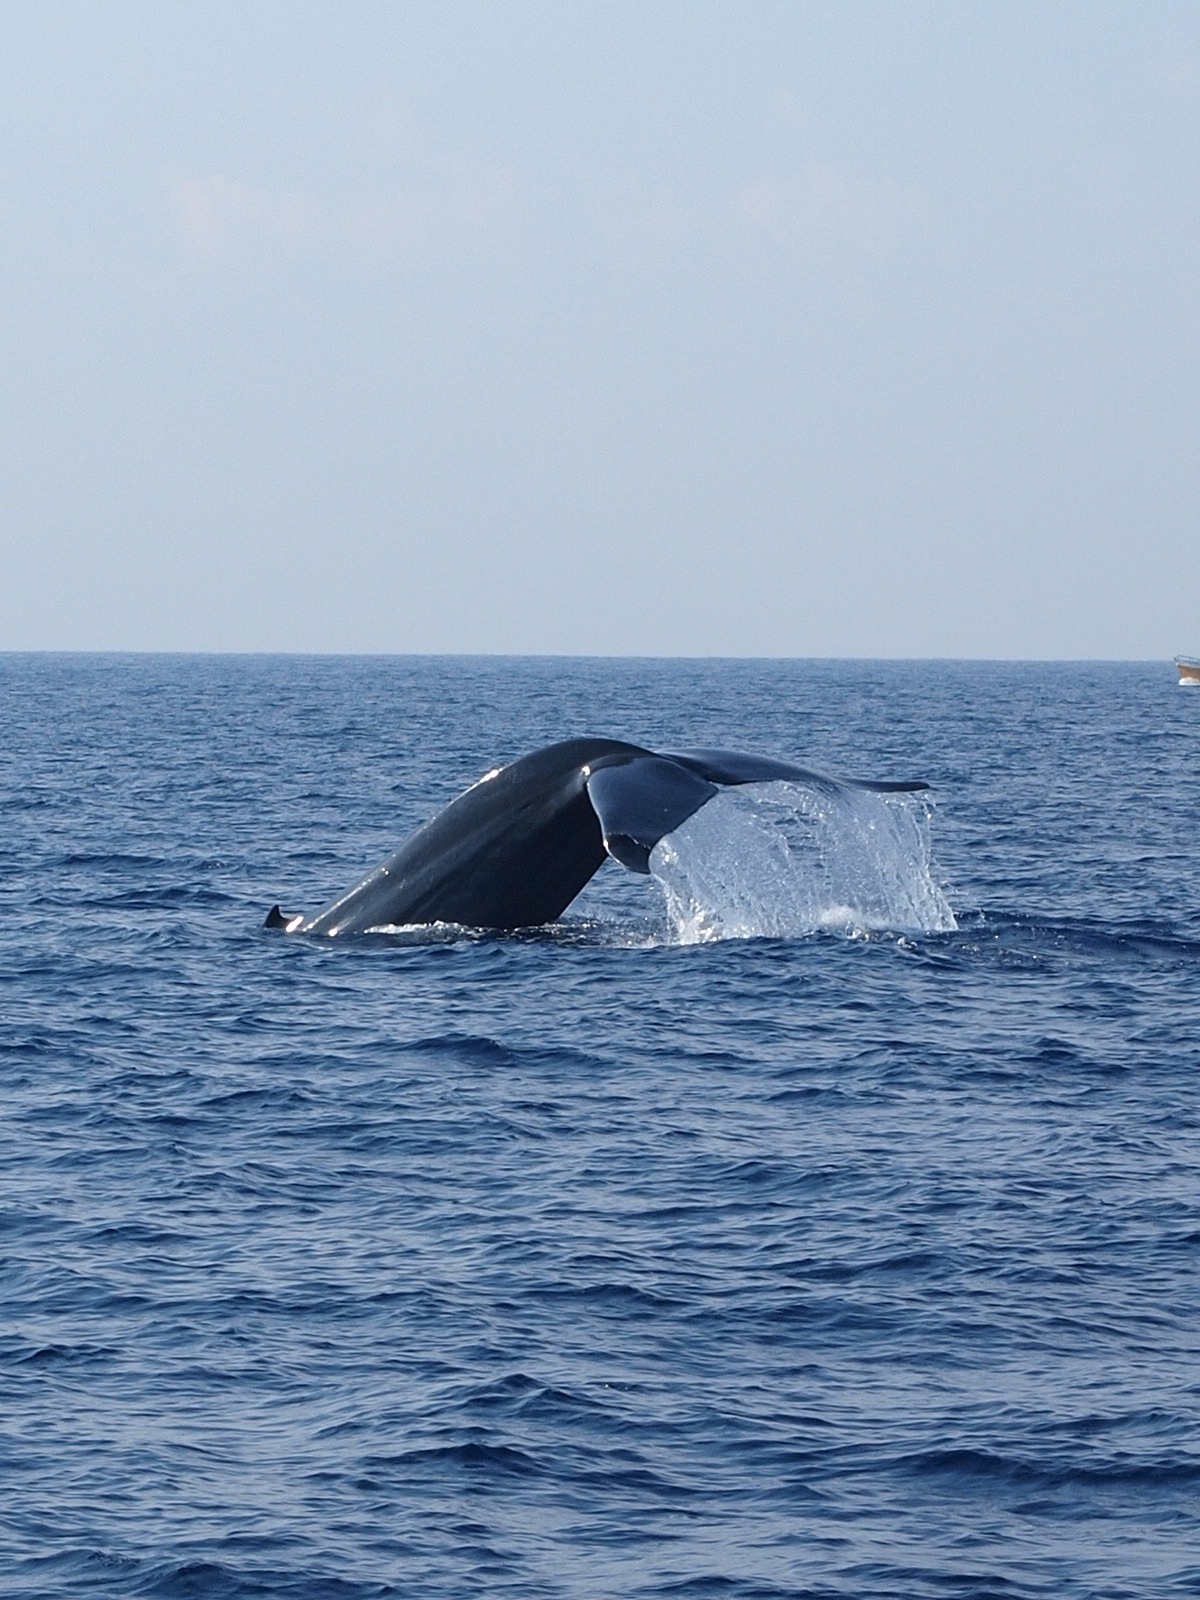 Blue whale off the coast of Sri Lanka. Photo courtesy Mark Clayden.